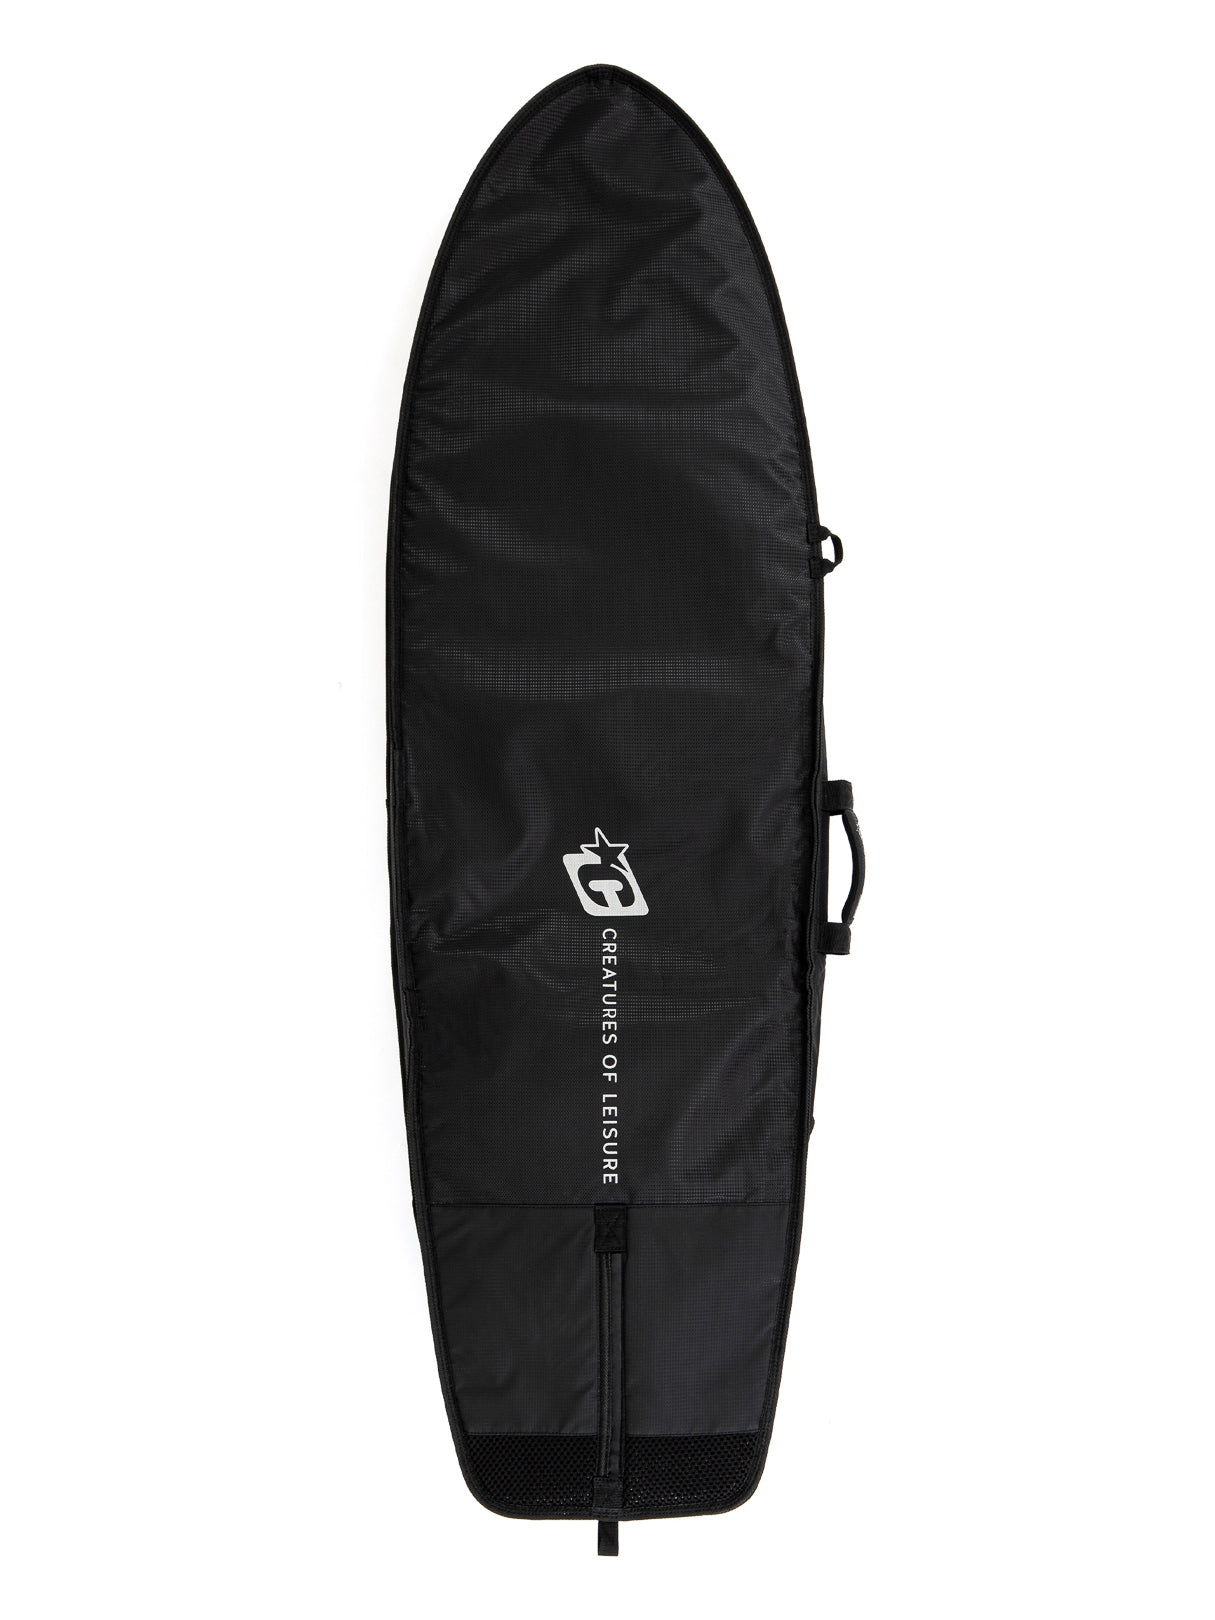 "Image of Creatures Of Leisure Creatures Of Leisure Fish Day Use DT2.0 Boardcover, 6'0"" / Black"